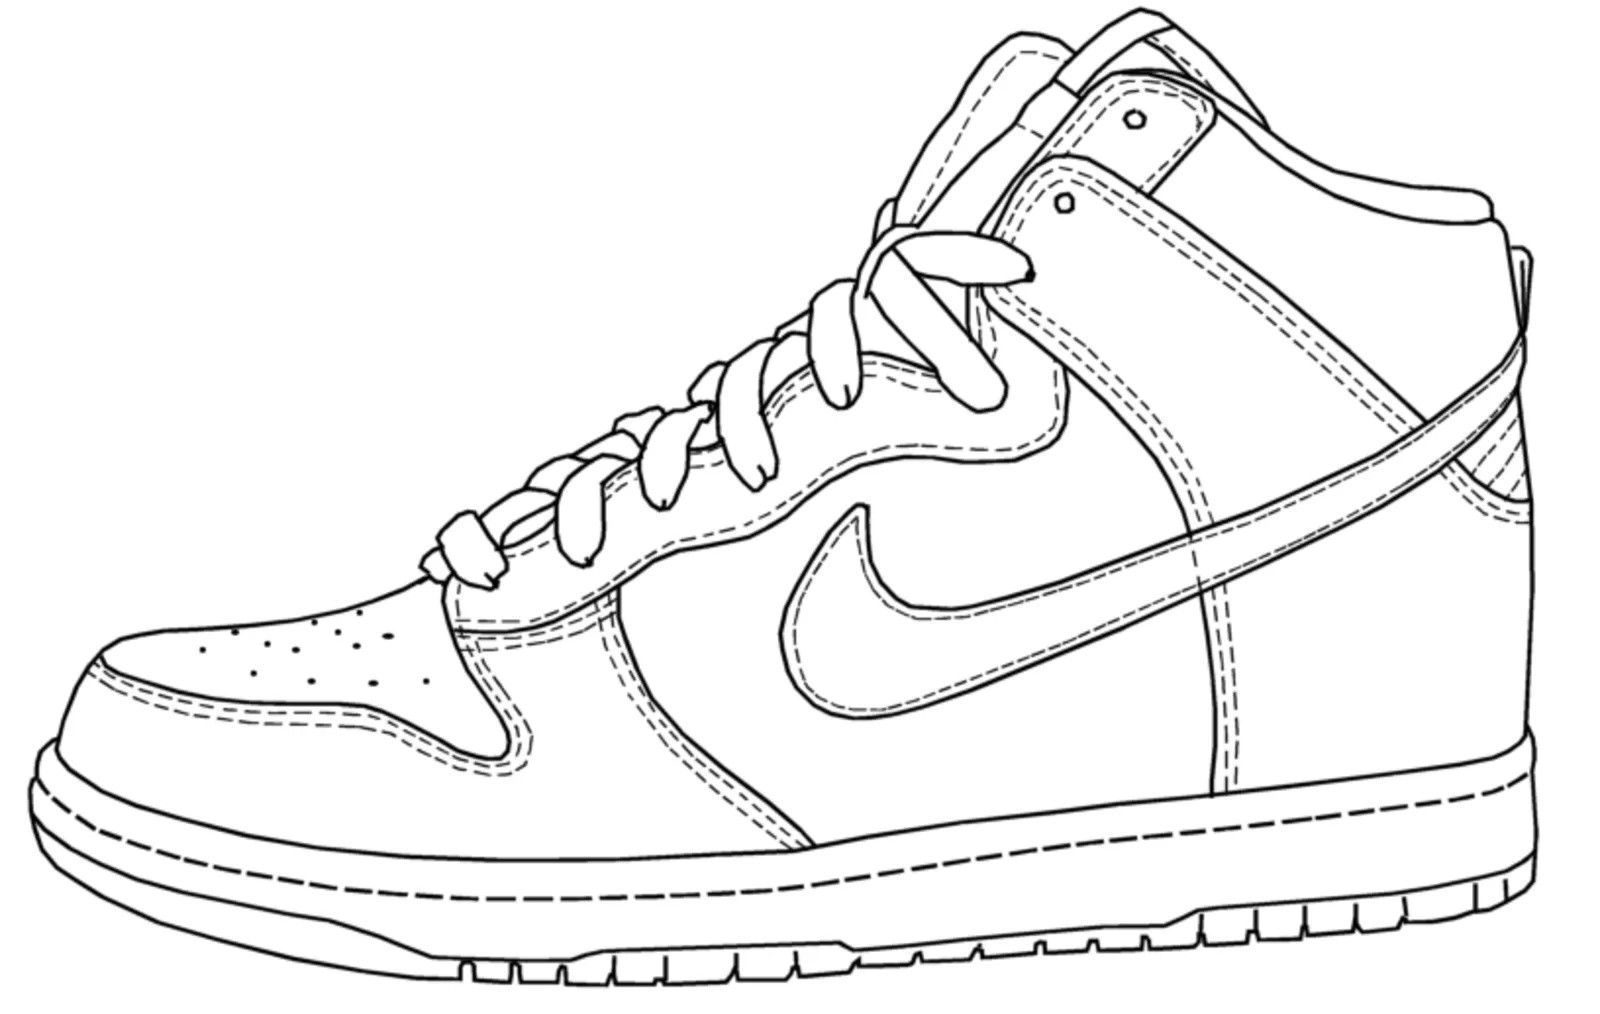 Stunning Nike Air Jordan Coloring Pages With Shoes In Force 1 And Shoes Drawing Sneakers Drawing Sneakers Sketch